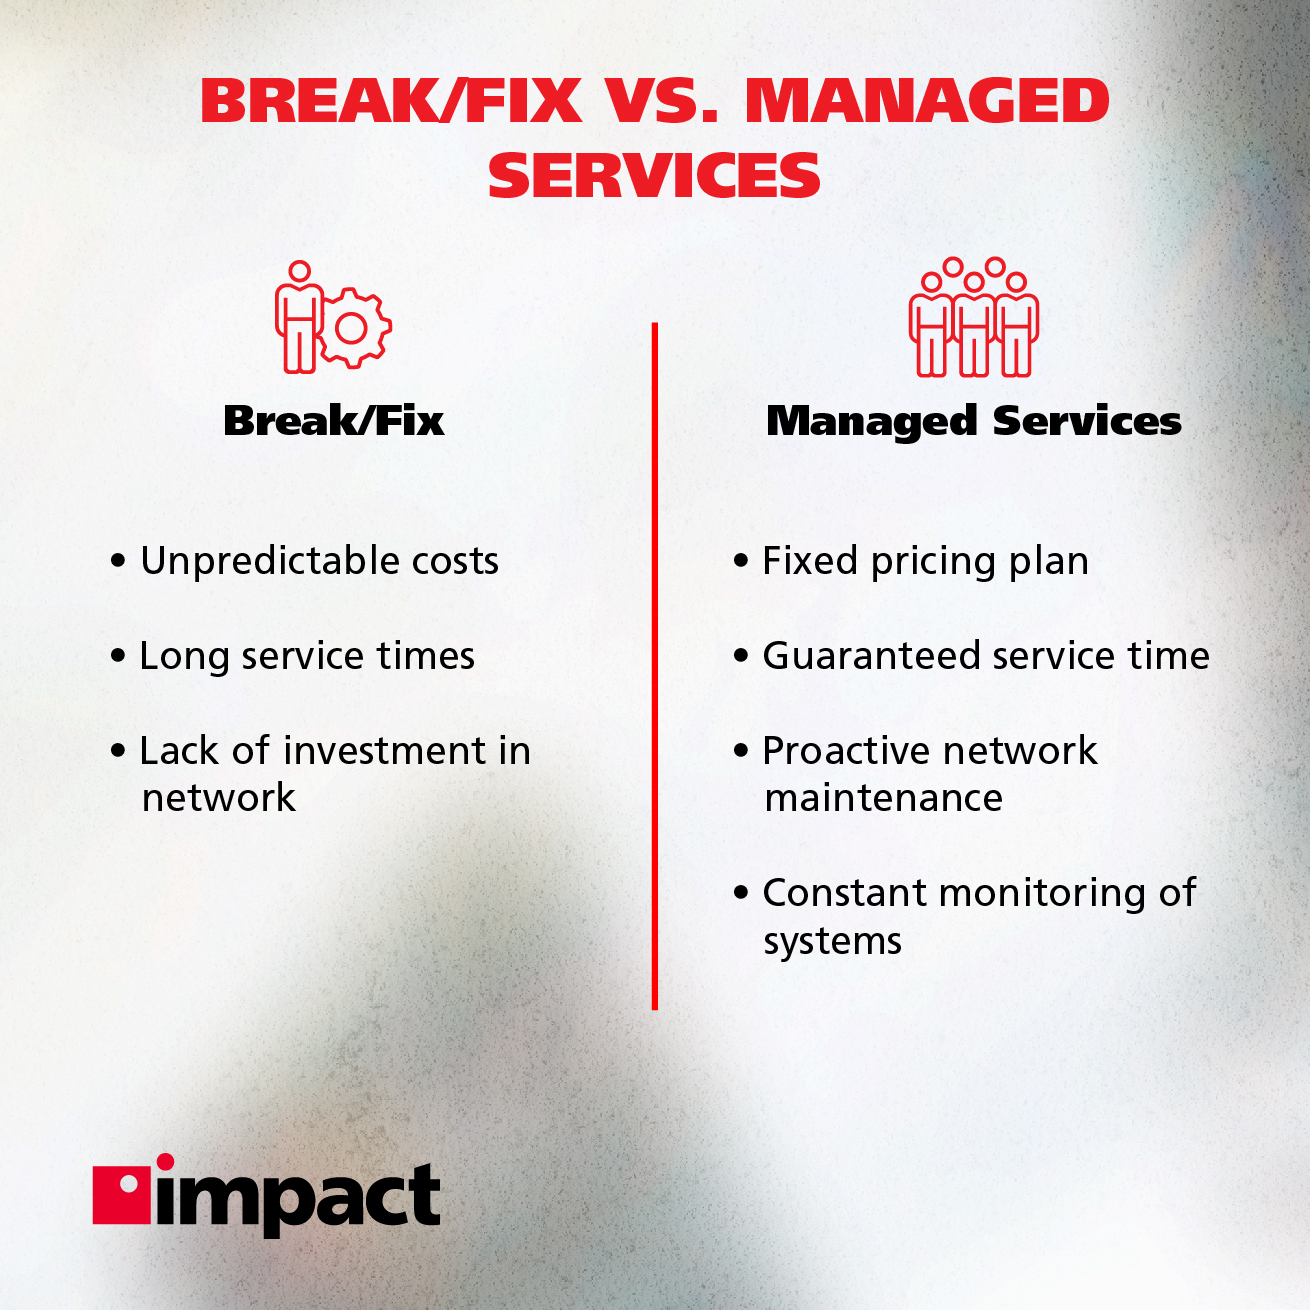 Break/fix vs managed services